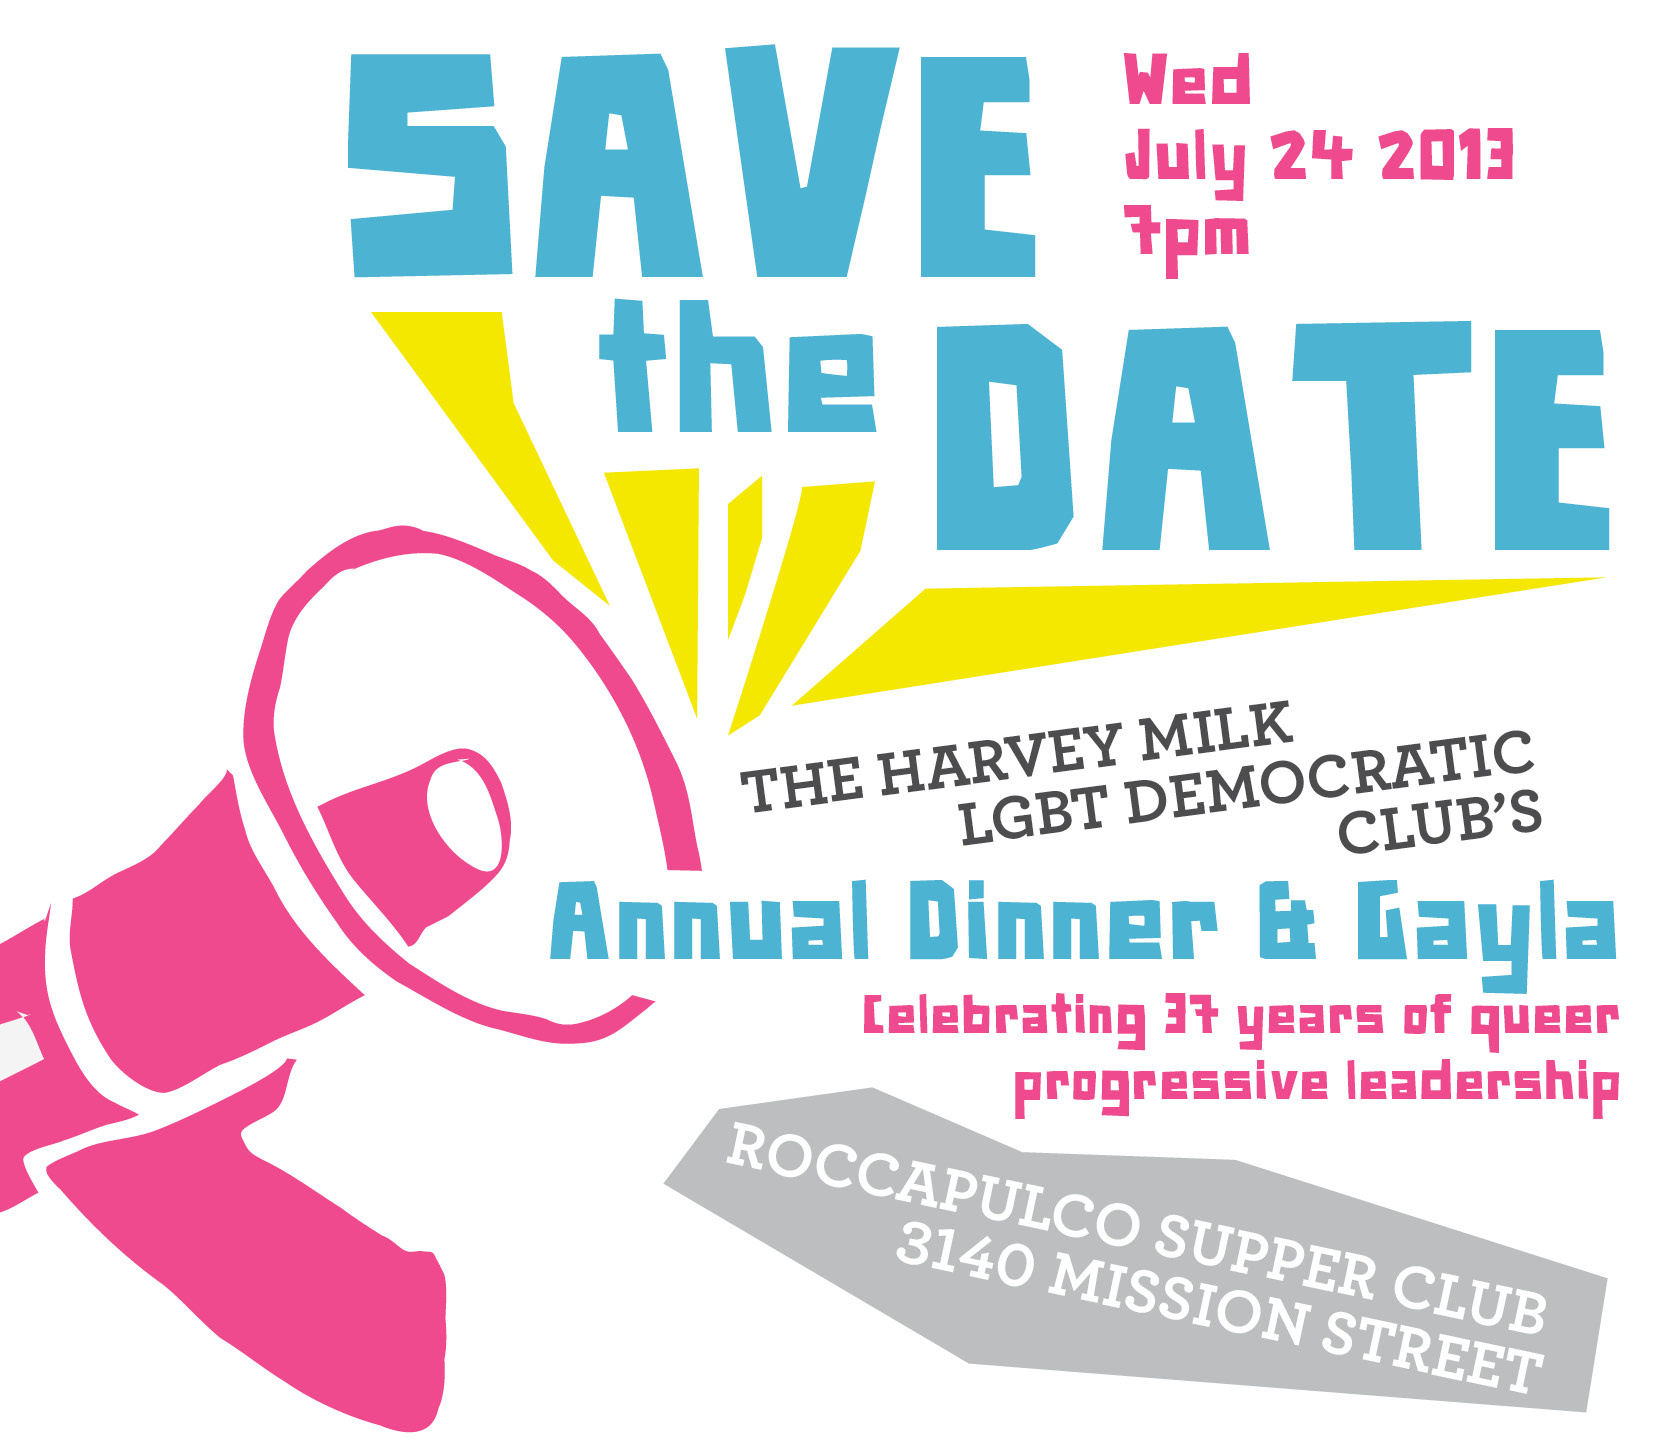 harvey-save-the-date-v2.jpg